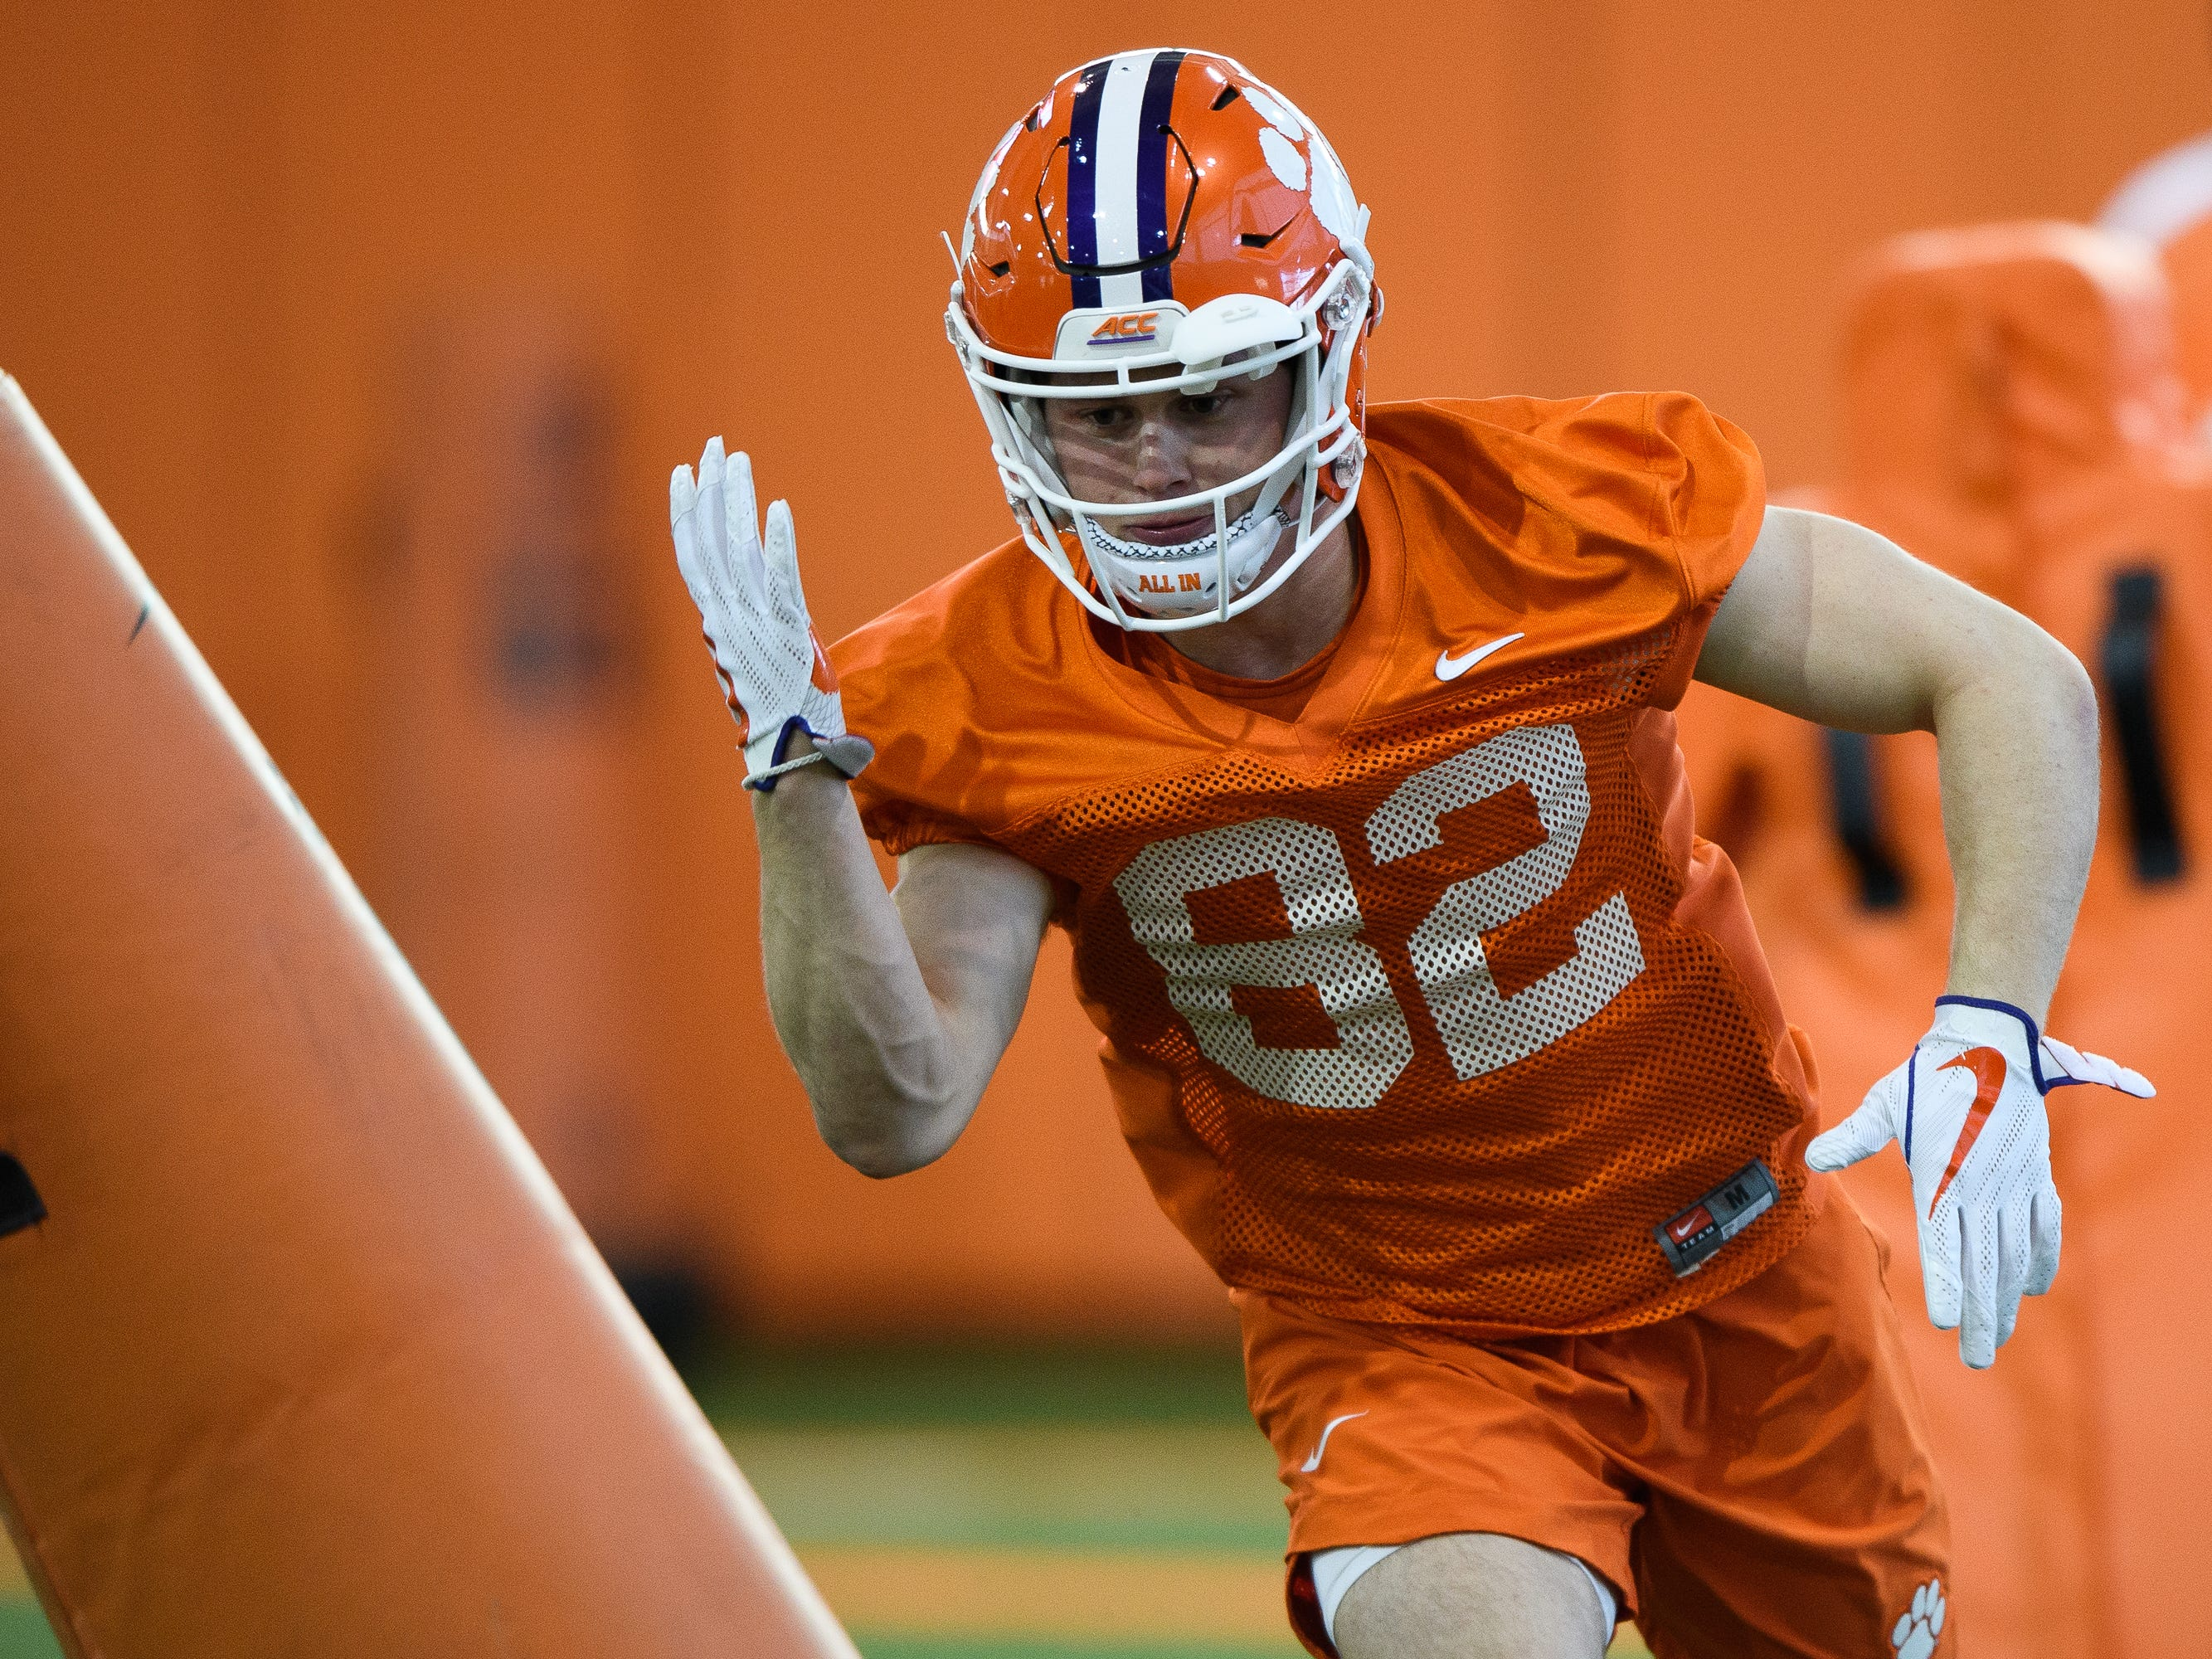 Clemson wide receiver Will Brown (82) during practice at the Allen Reeves Football Complex on Wednesday, Feb. 27, 2019.